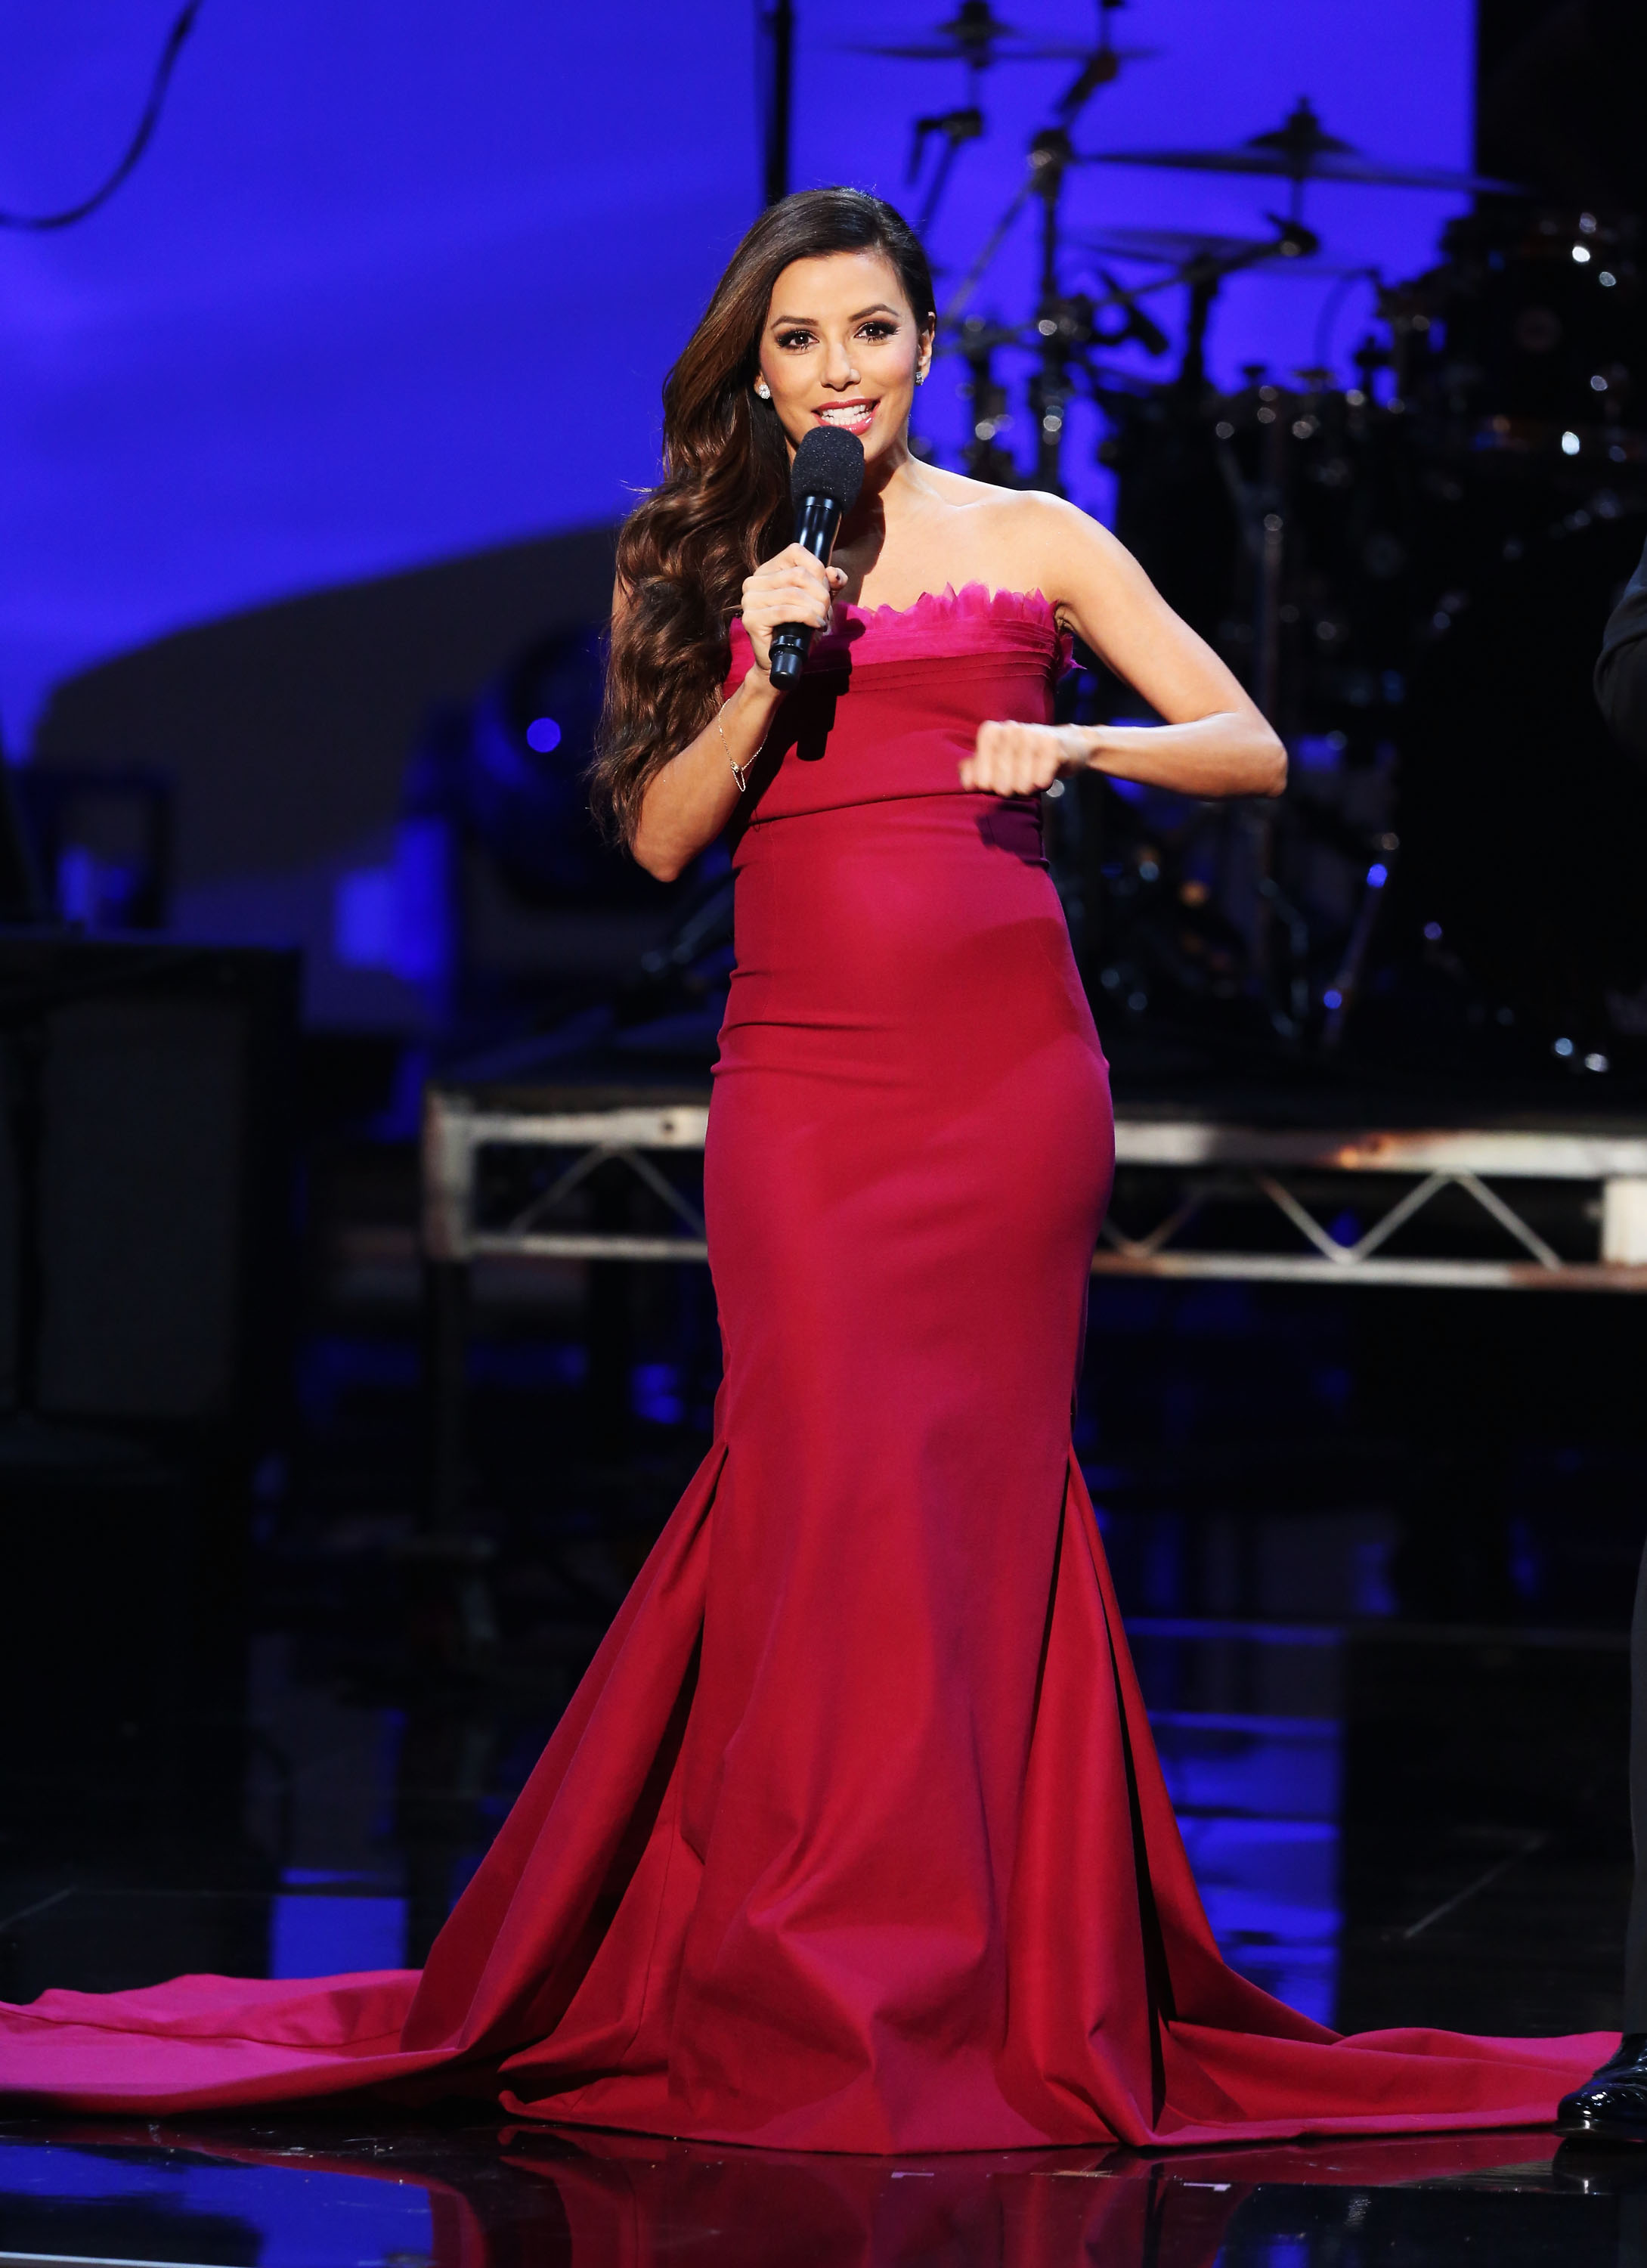 Eva Longoria wore a magenta gown for one of her many outfits at the ALMA Awards in LA.